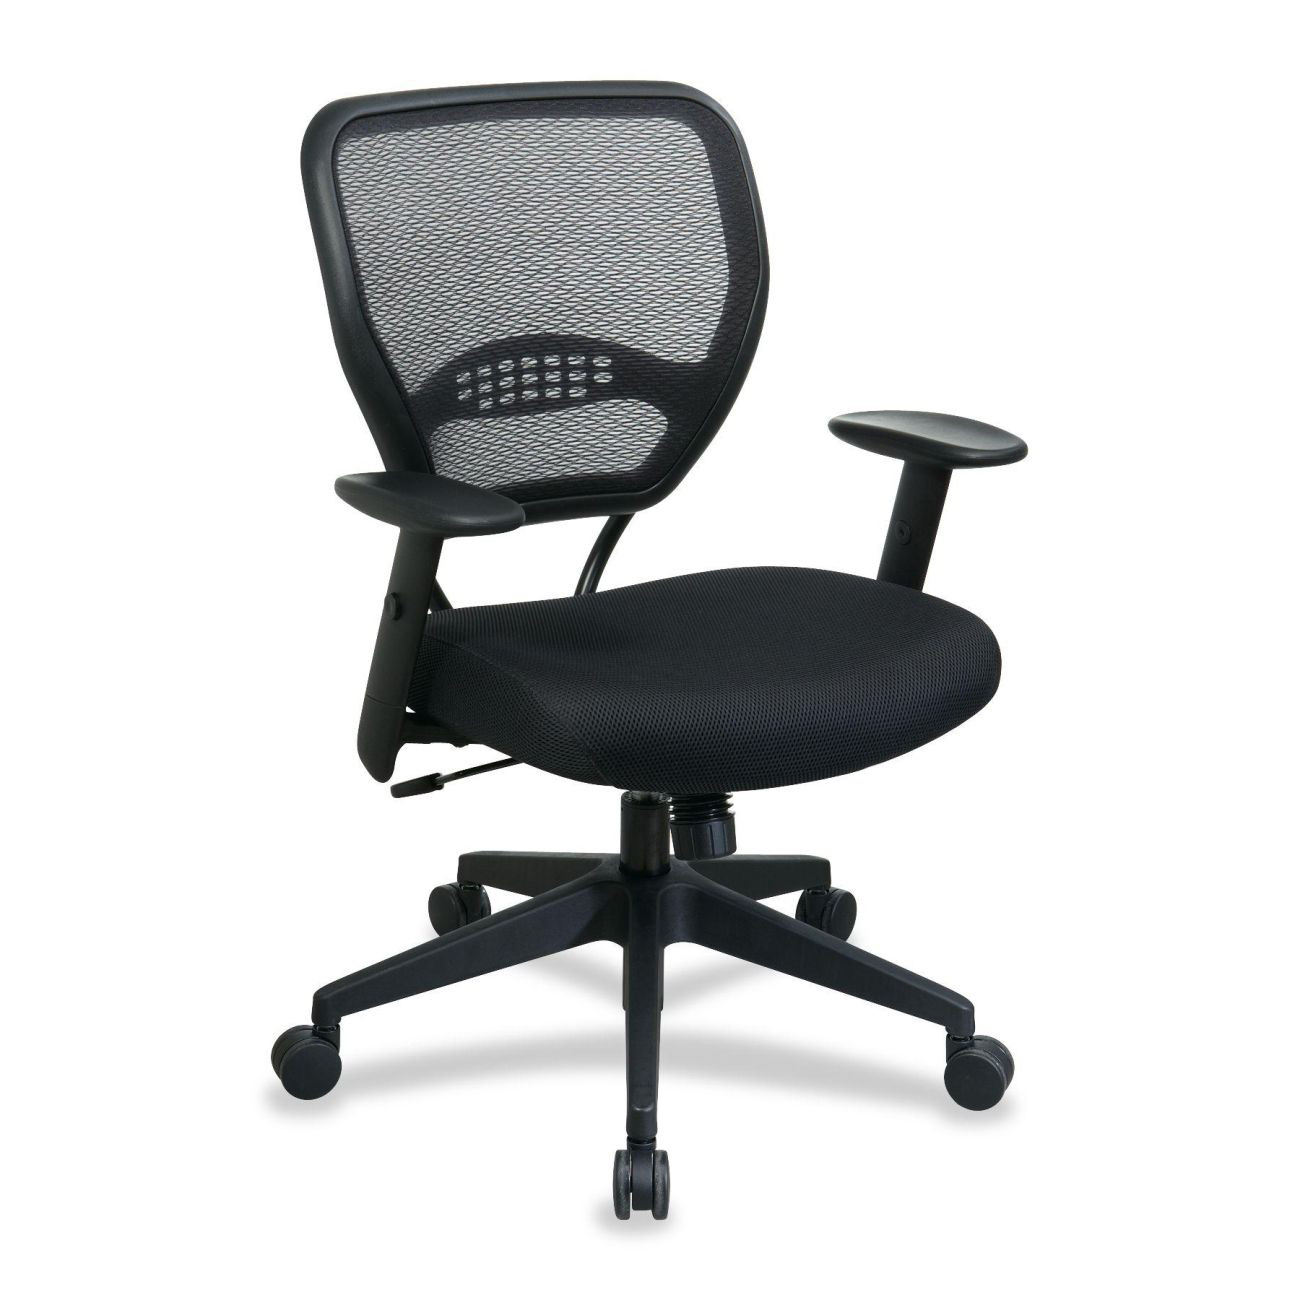 Used Office Chairs For Sale - Space 5500 Used Office Furniture For Sale